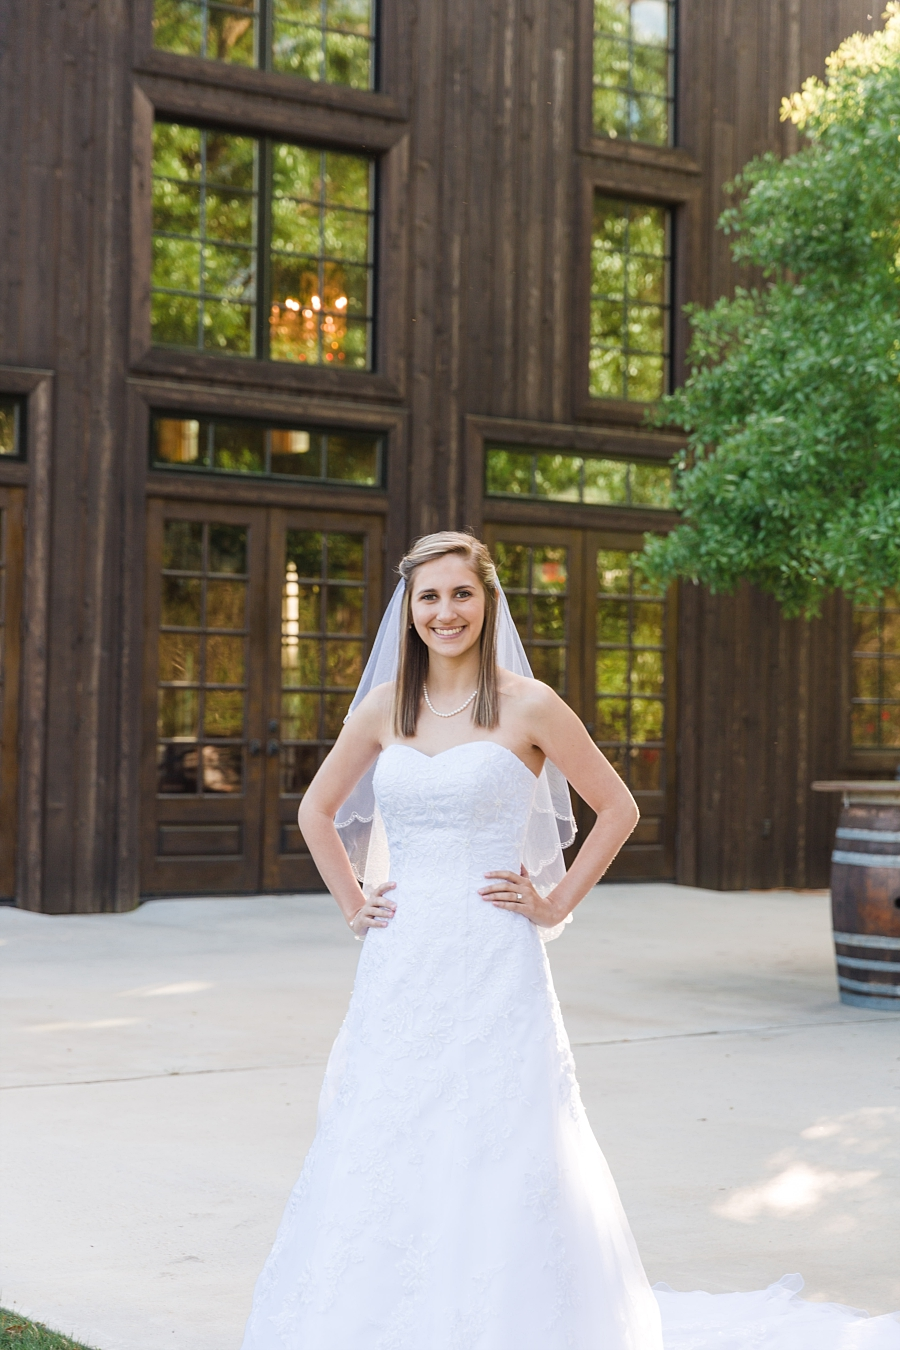 Stacy-Anderson-Photography-Carriage-House-Houston-Wedding-Photographer_0030.jpg